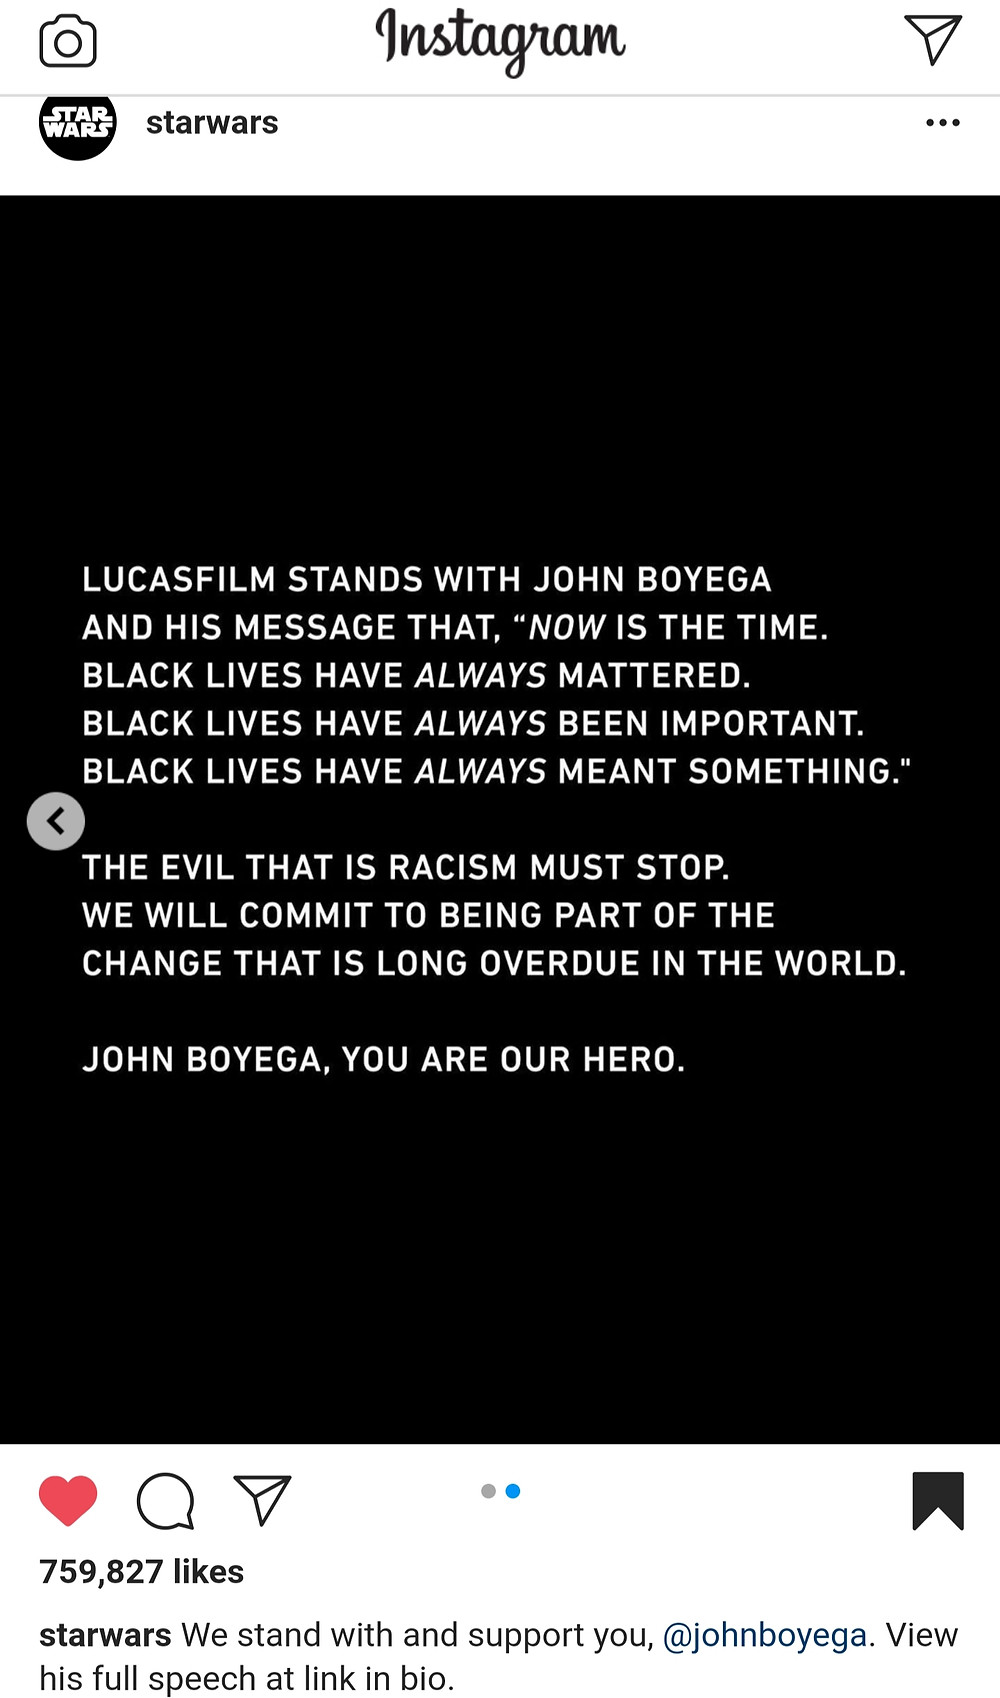 A message of support and a promise to do better for the black community, backing John Boyega's monumental speech from the official Star Wars Instagram Account (Credit: Instagram).